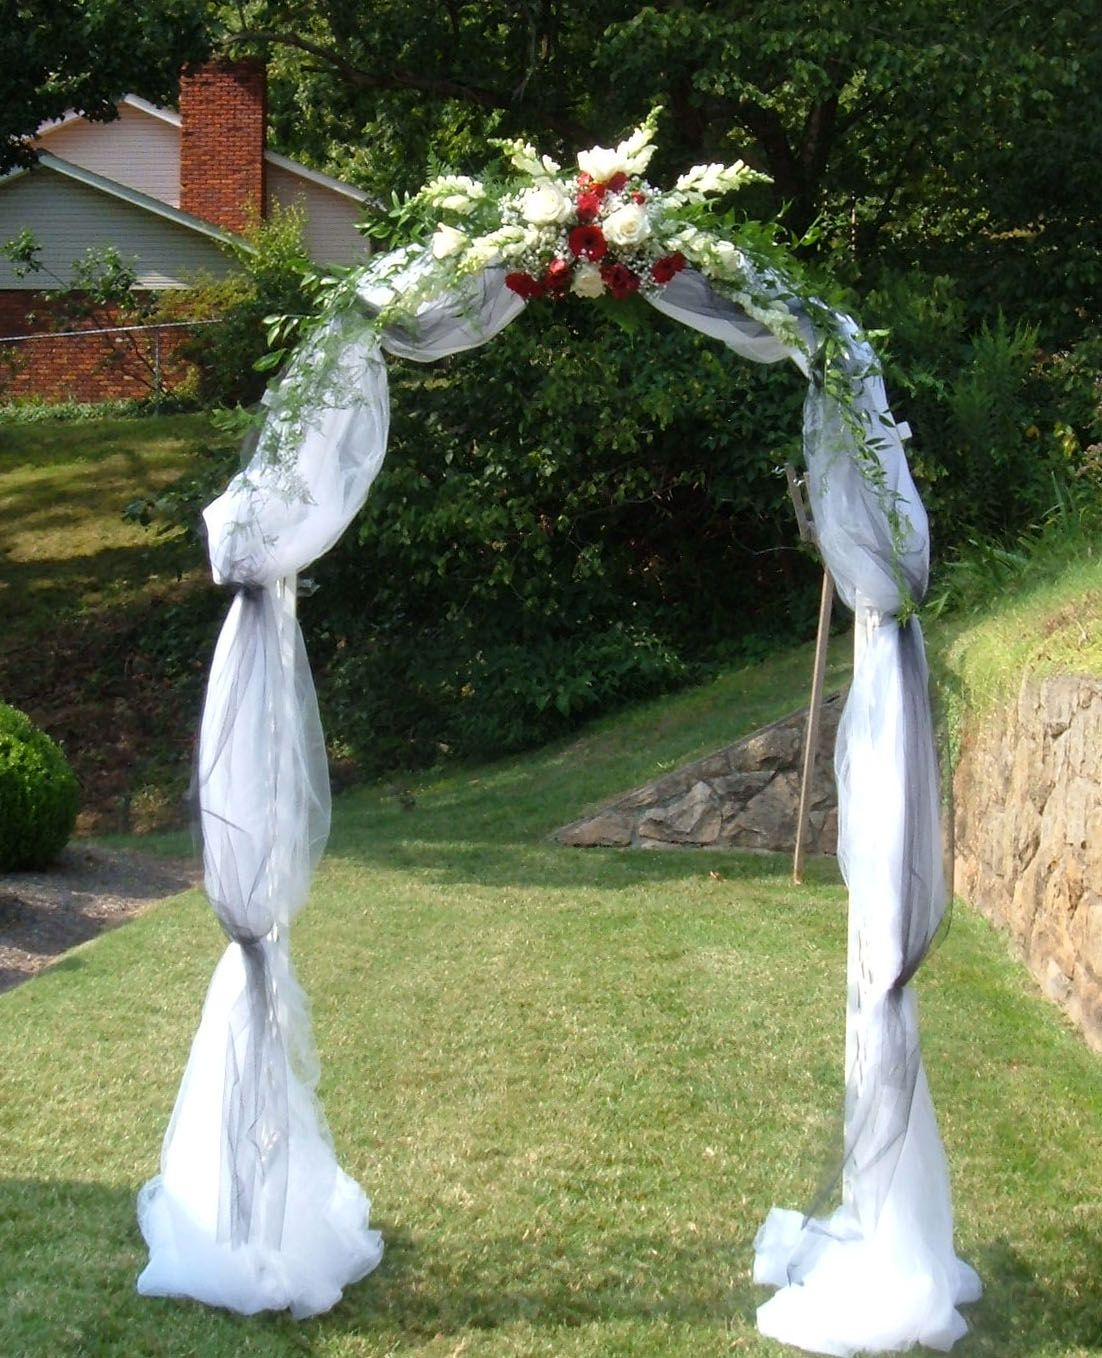 15 Outdoor Wedding Ideas That Are Totally Genius: Wedding Arch Covered With Tulle And Accented With Flowers